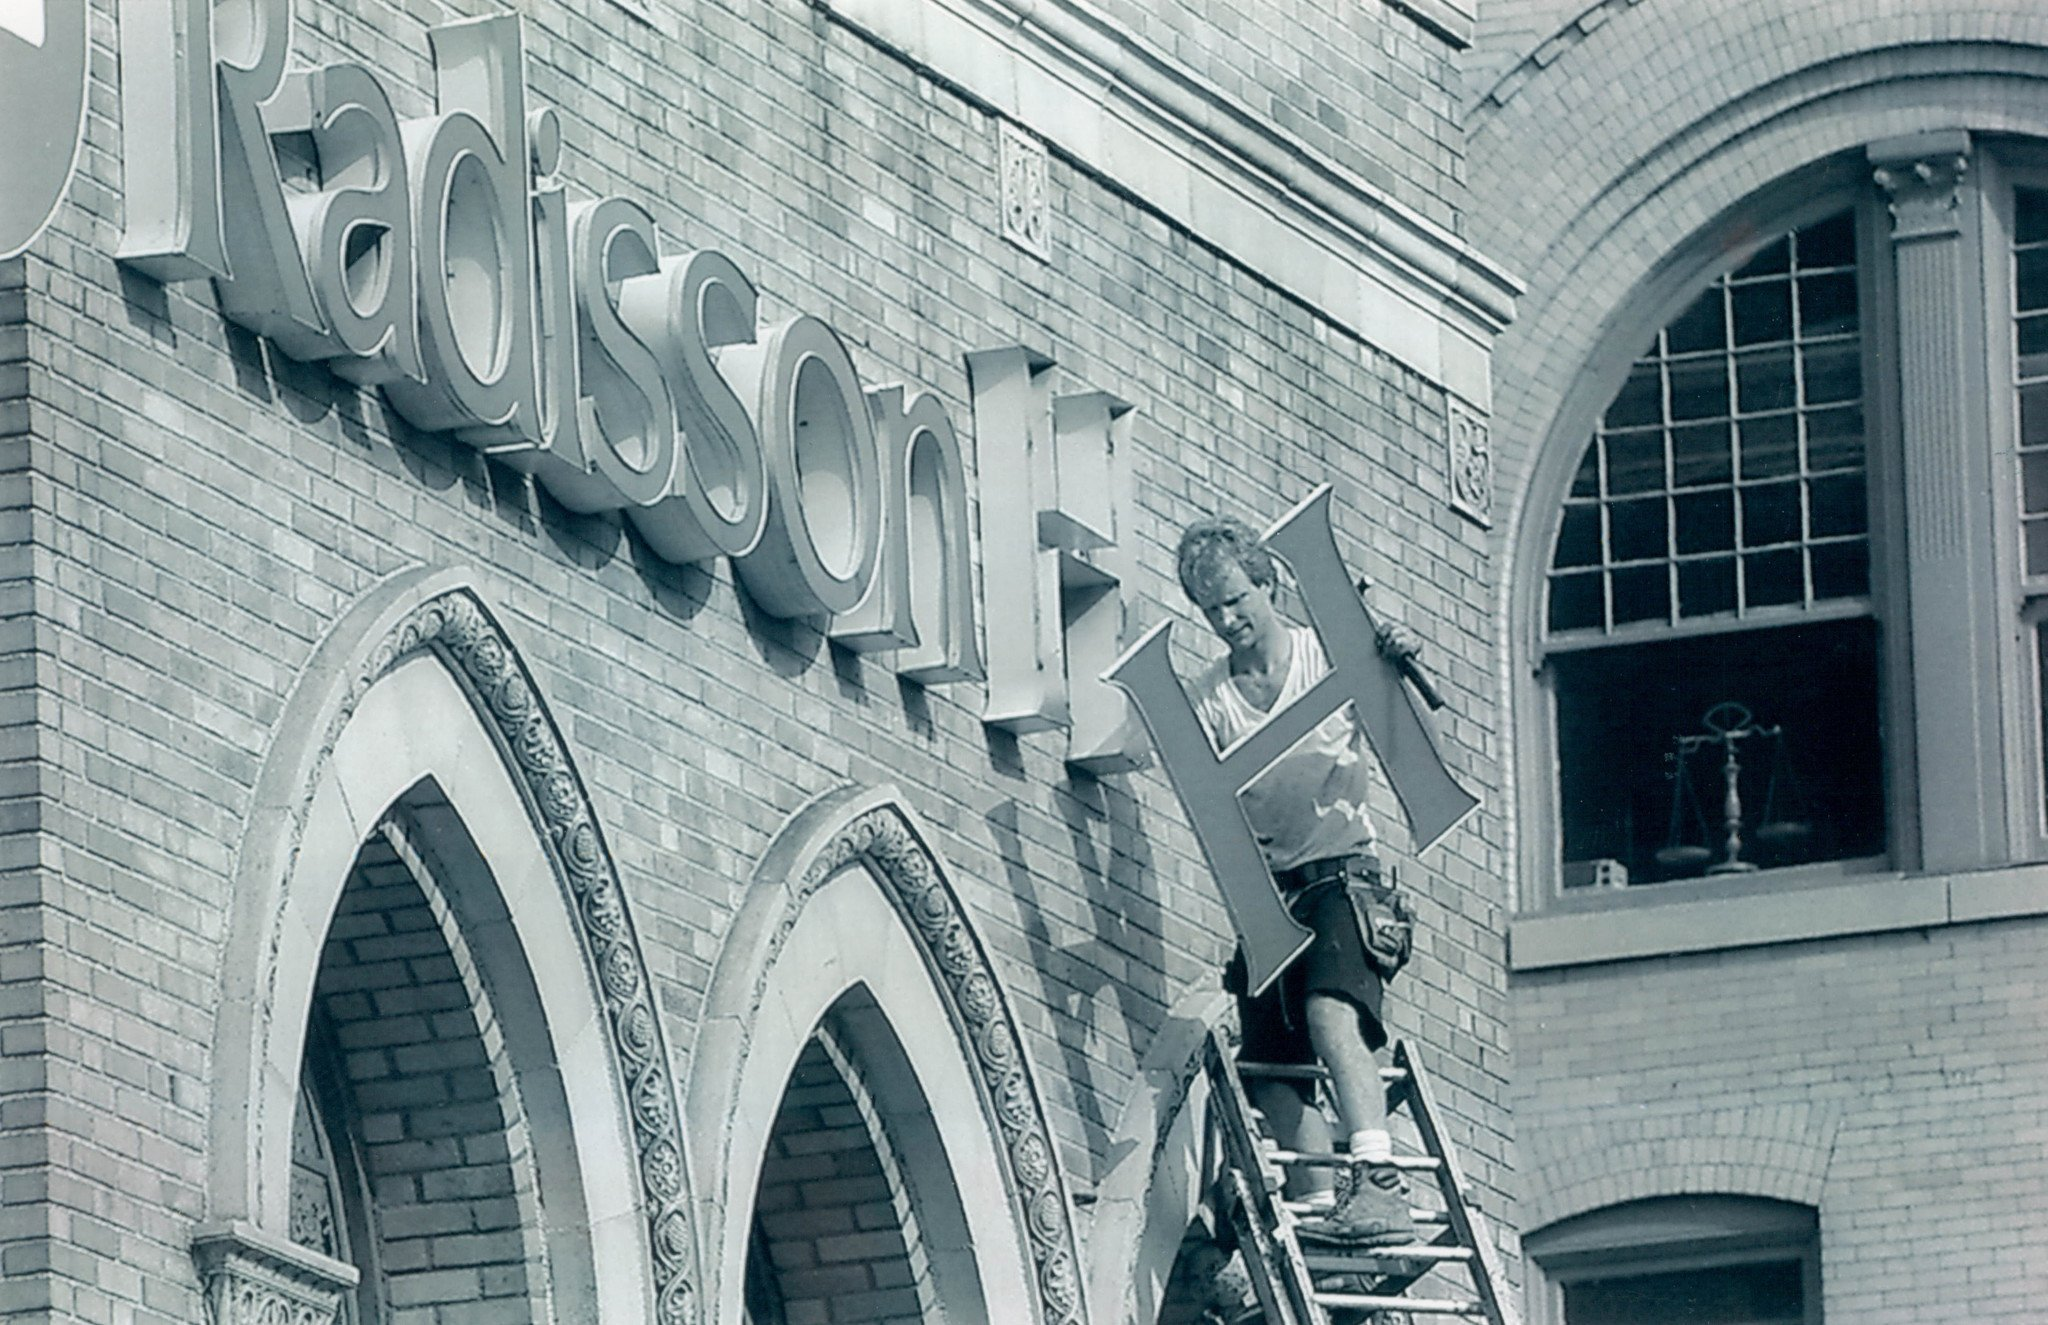 A worker removes the Radisson sign from the Americus in 1994.